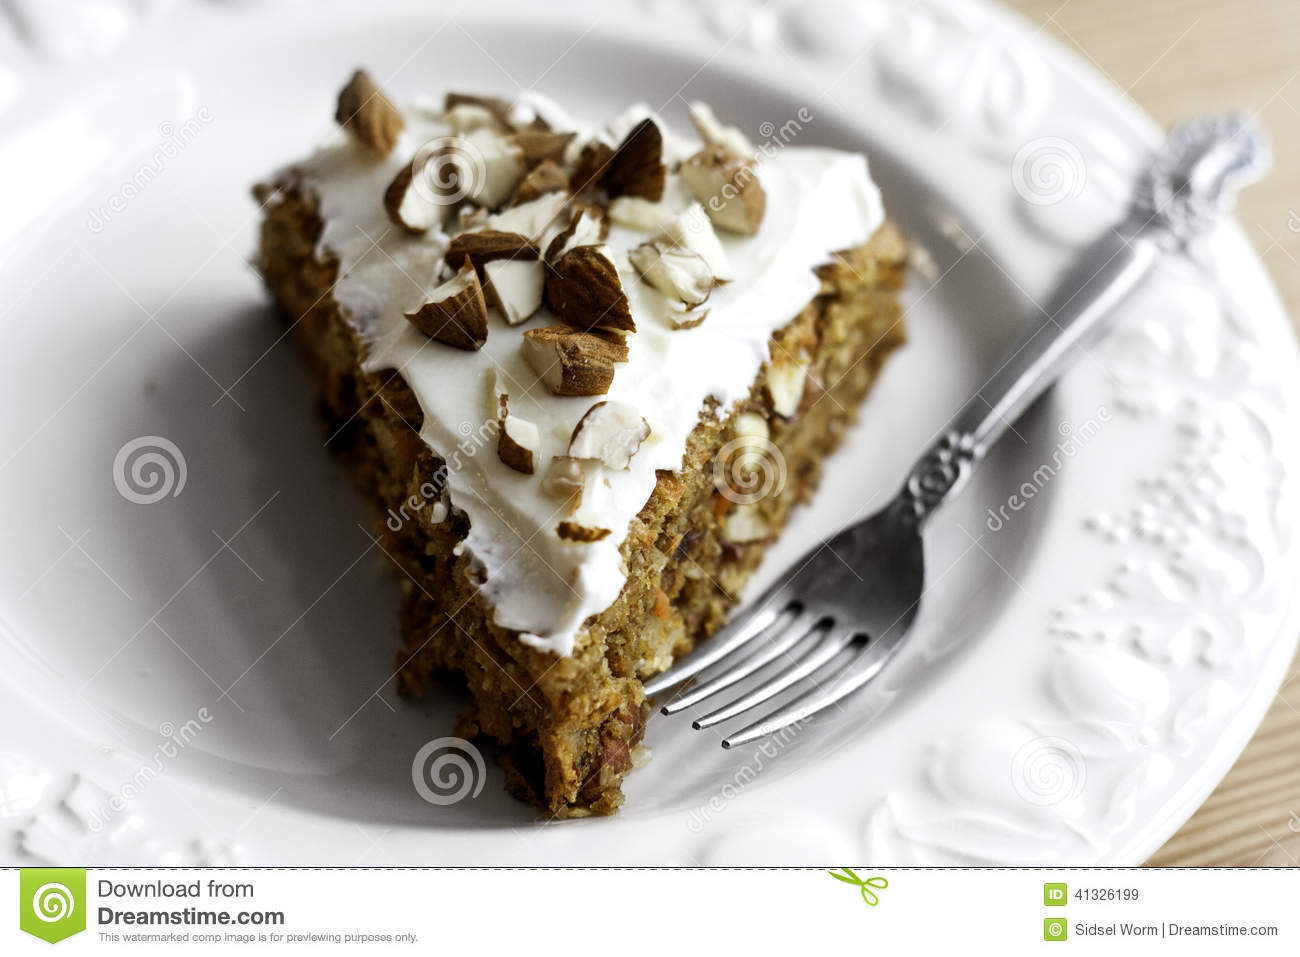 Download Carrot Cake stock image. Image of cream, plate, snack - 41326199